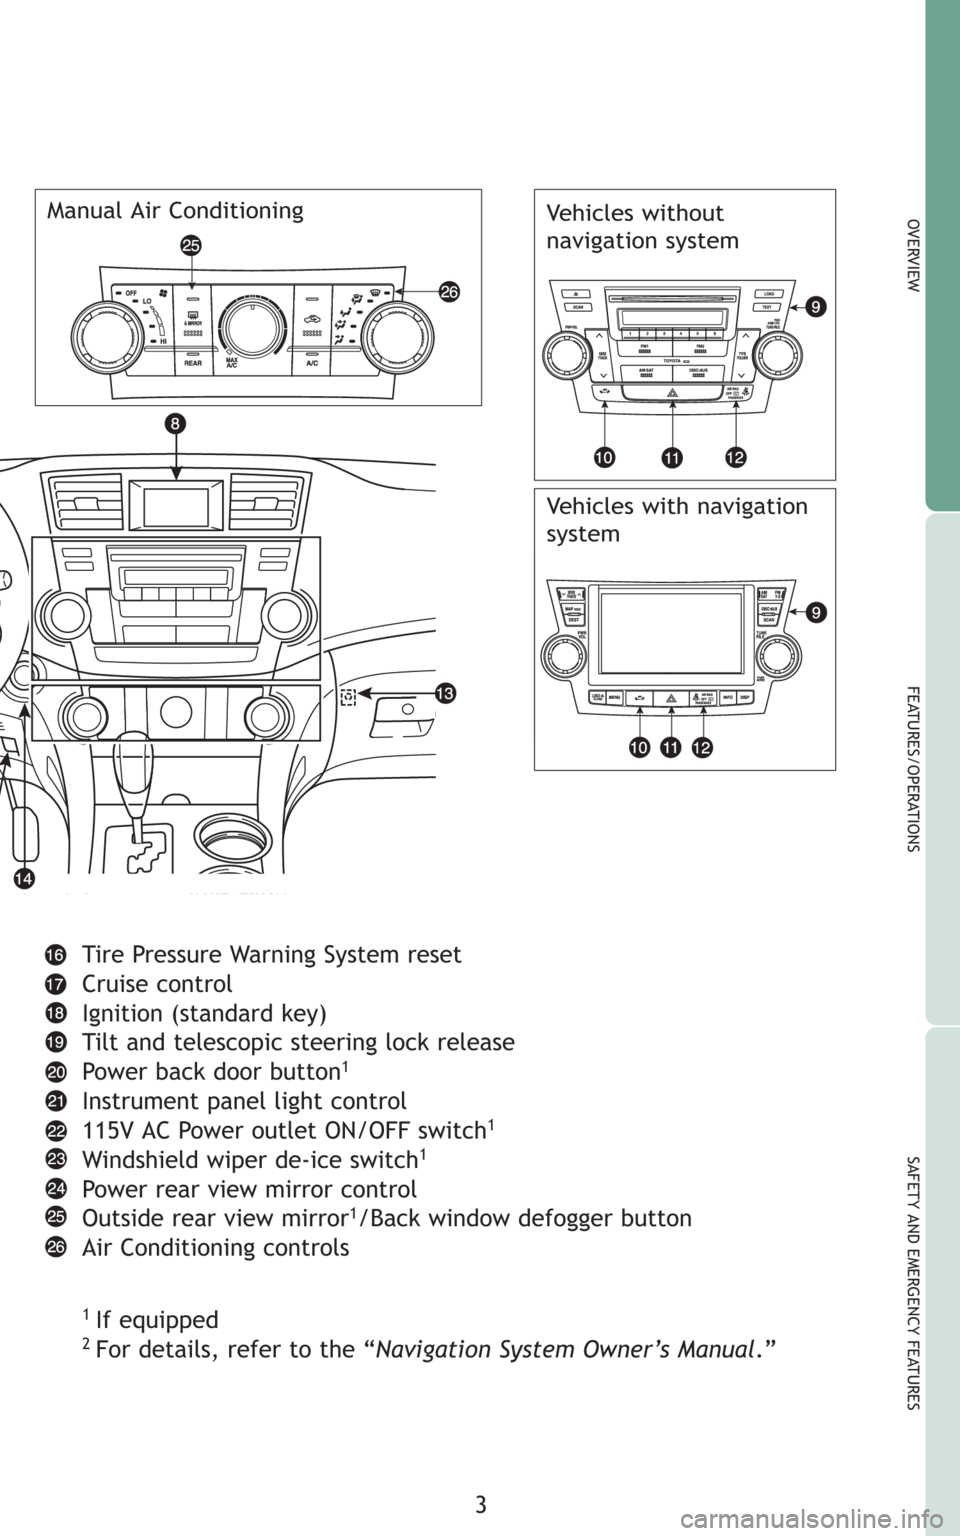 TOYOTA HIGHLANDER 2008 XU40  2G Quick Reference Guide